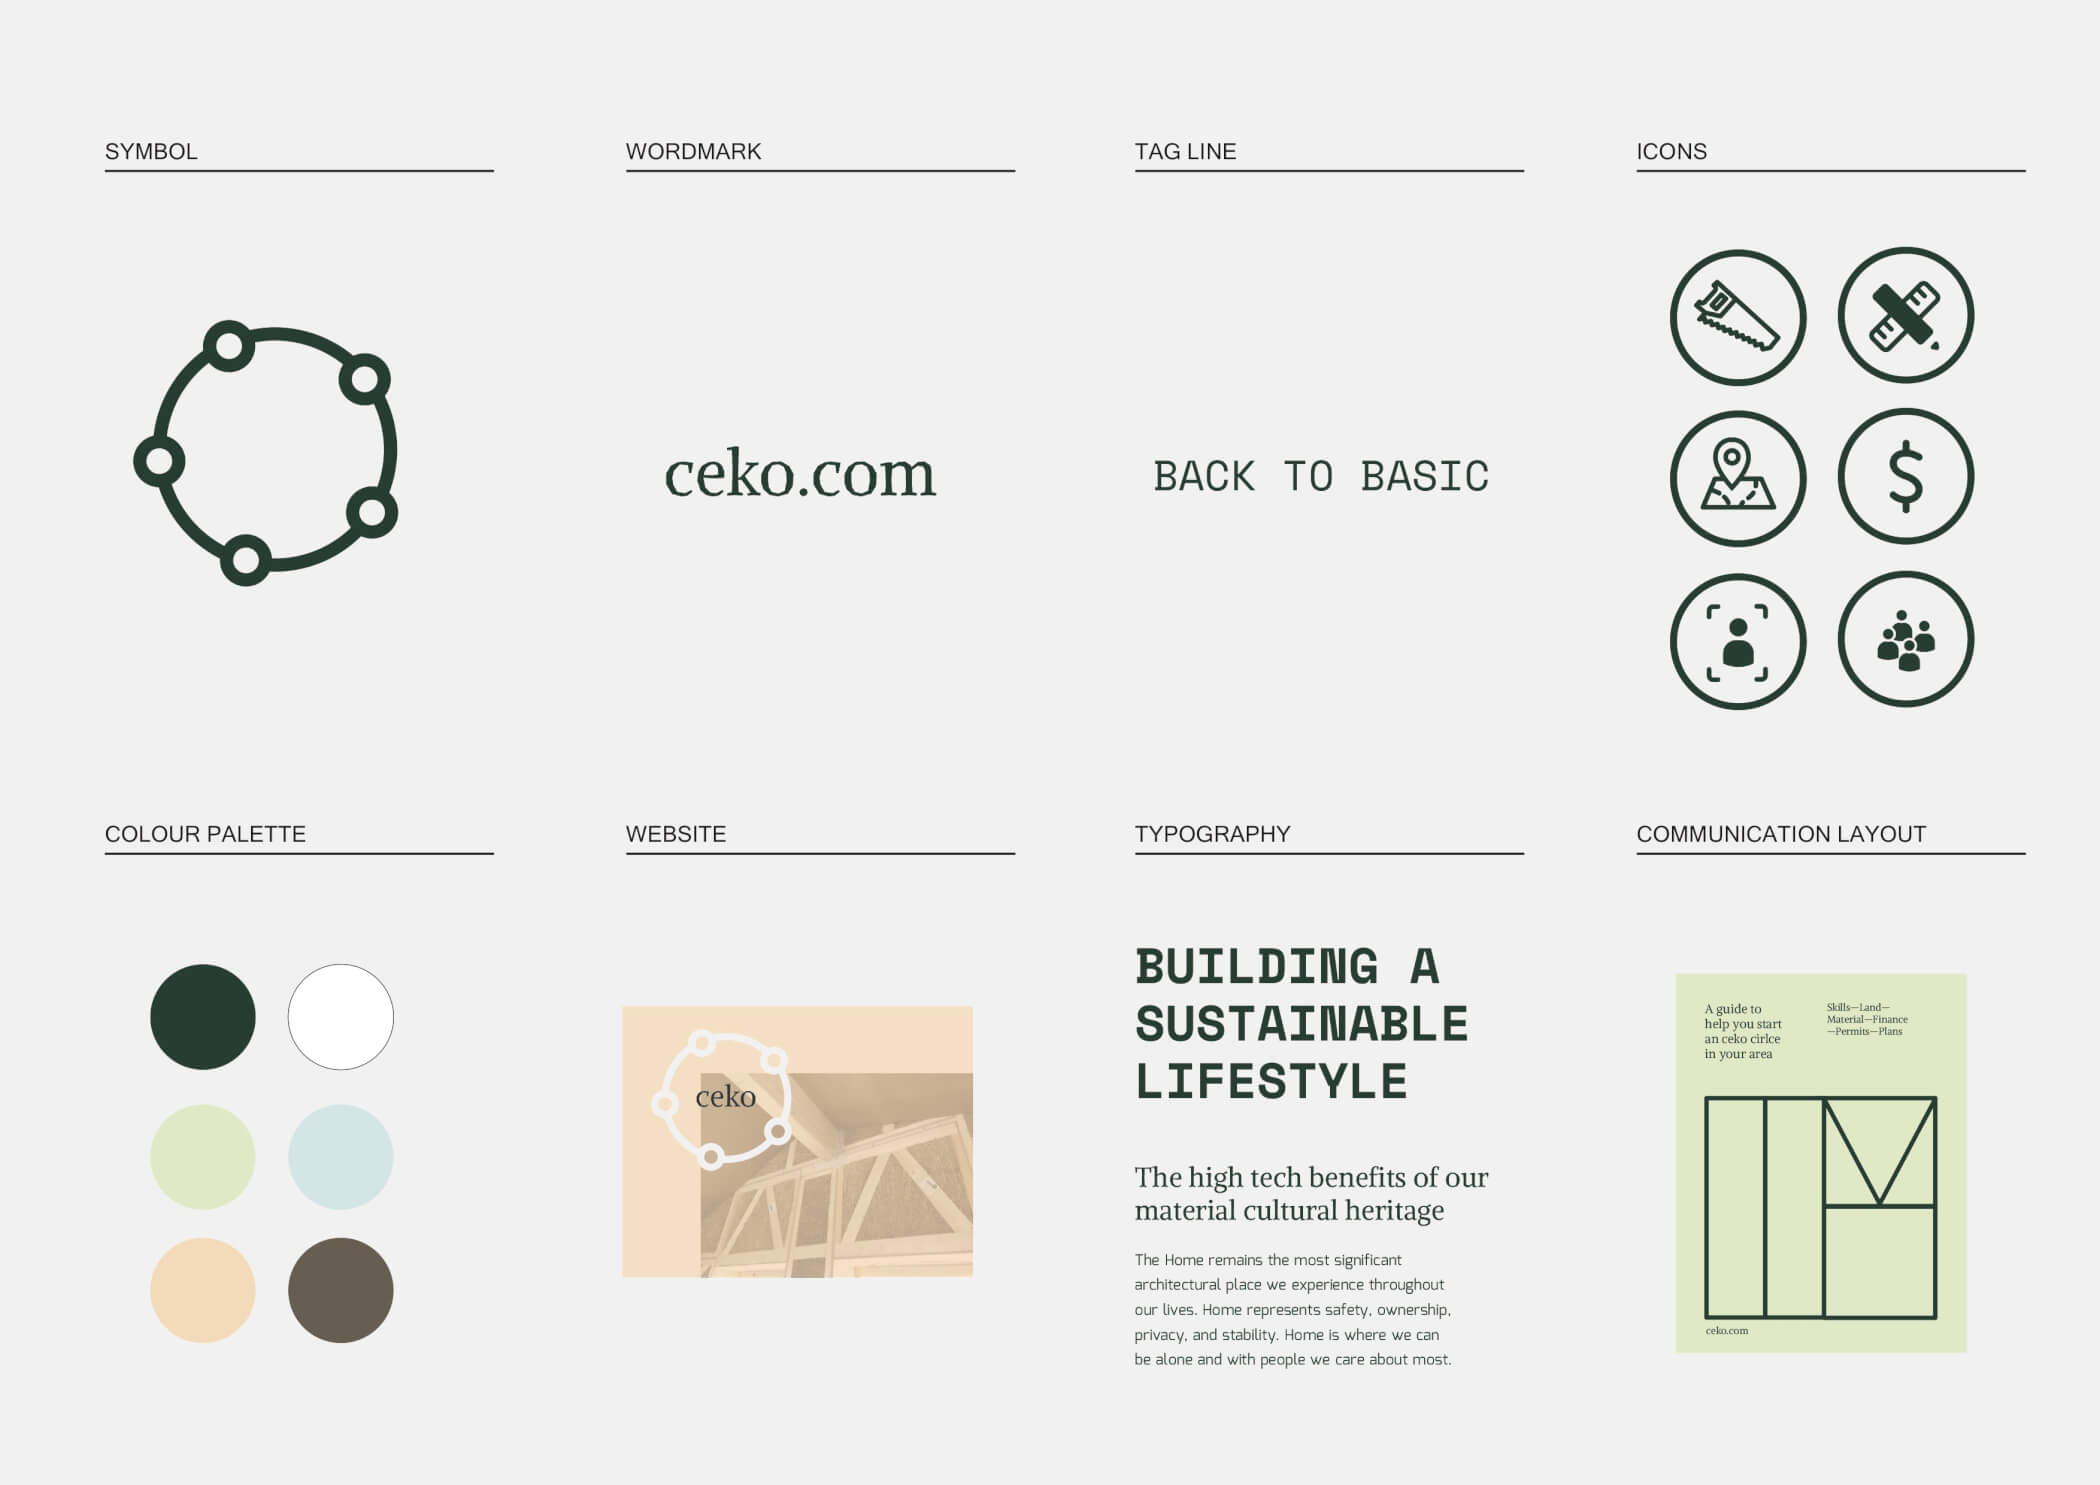 BRAND GUIDELINES for ceko